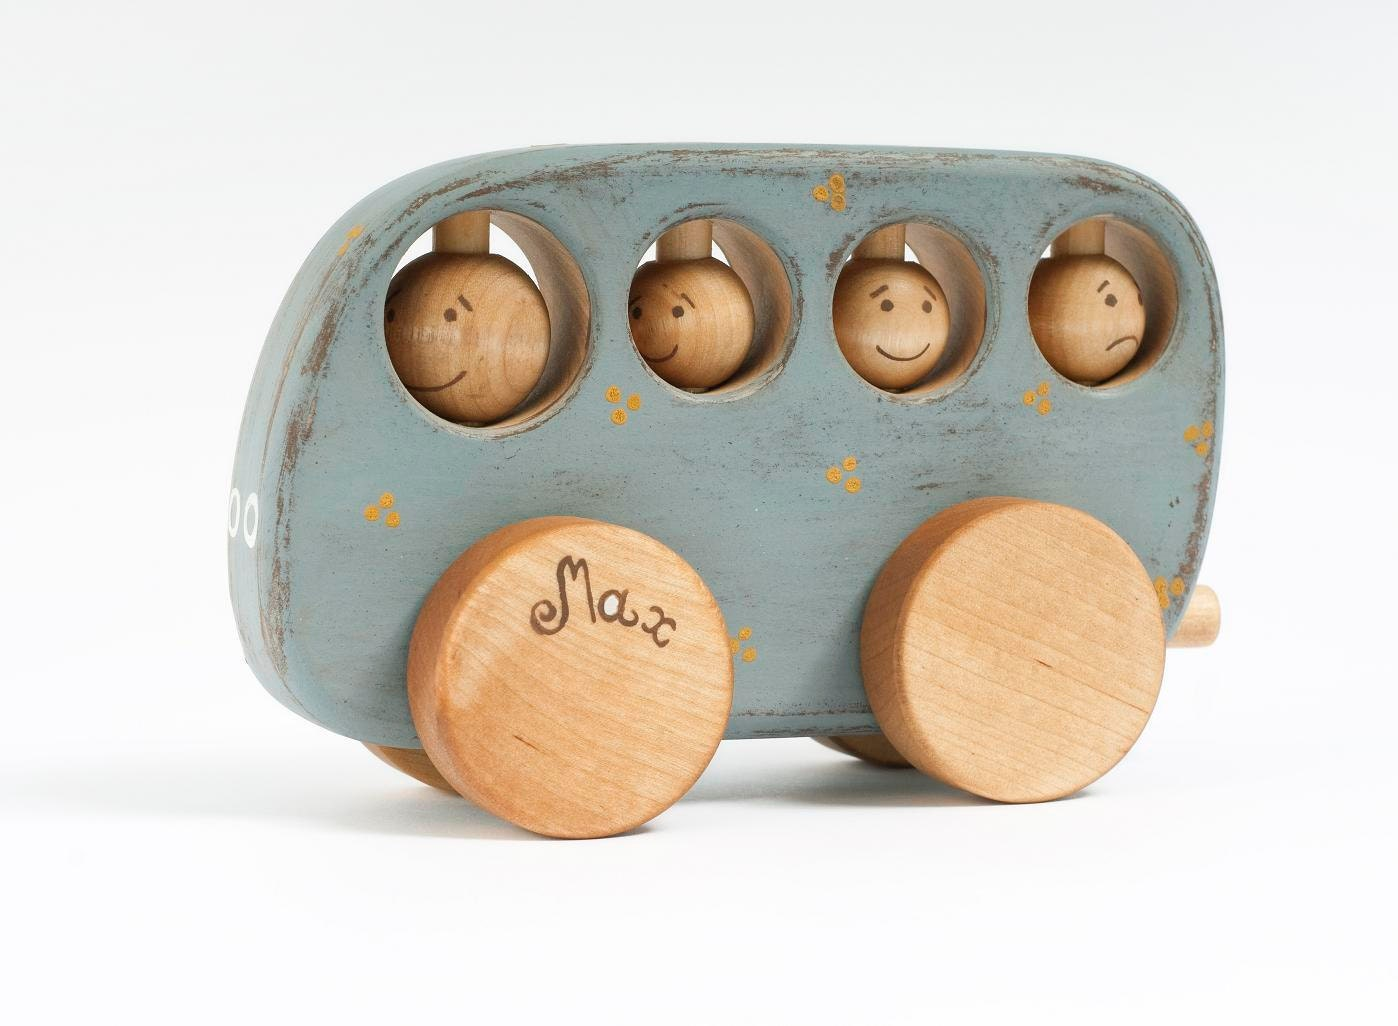 Personalized Wooden Bus natural light blue kids toy - FriendlyToys